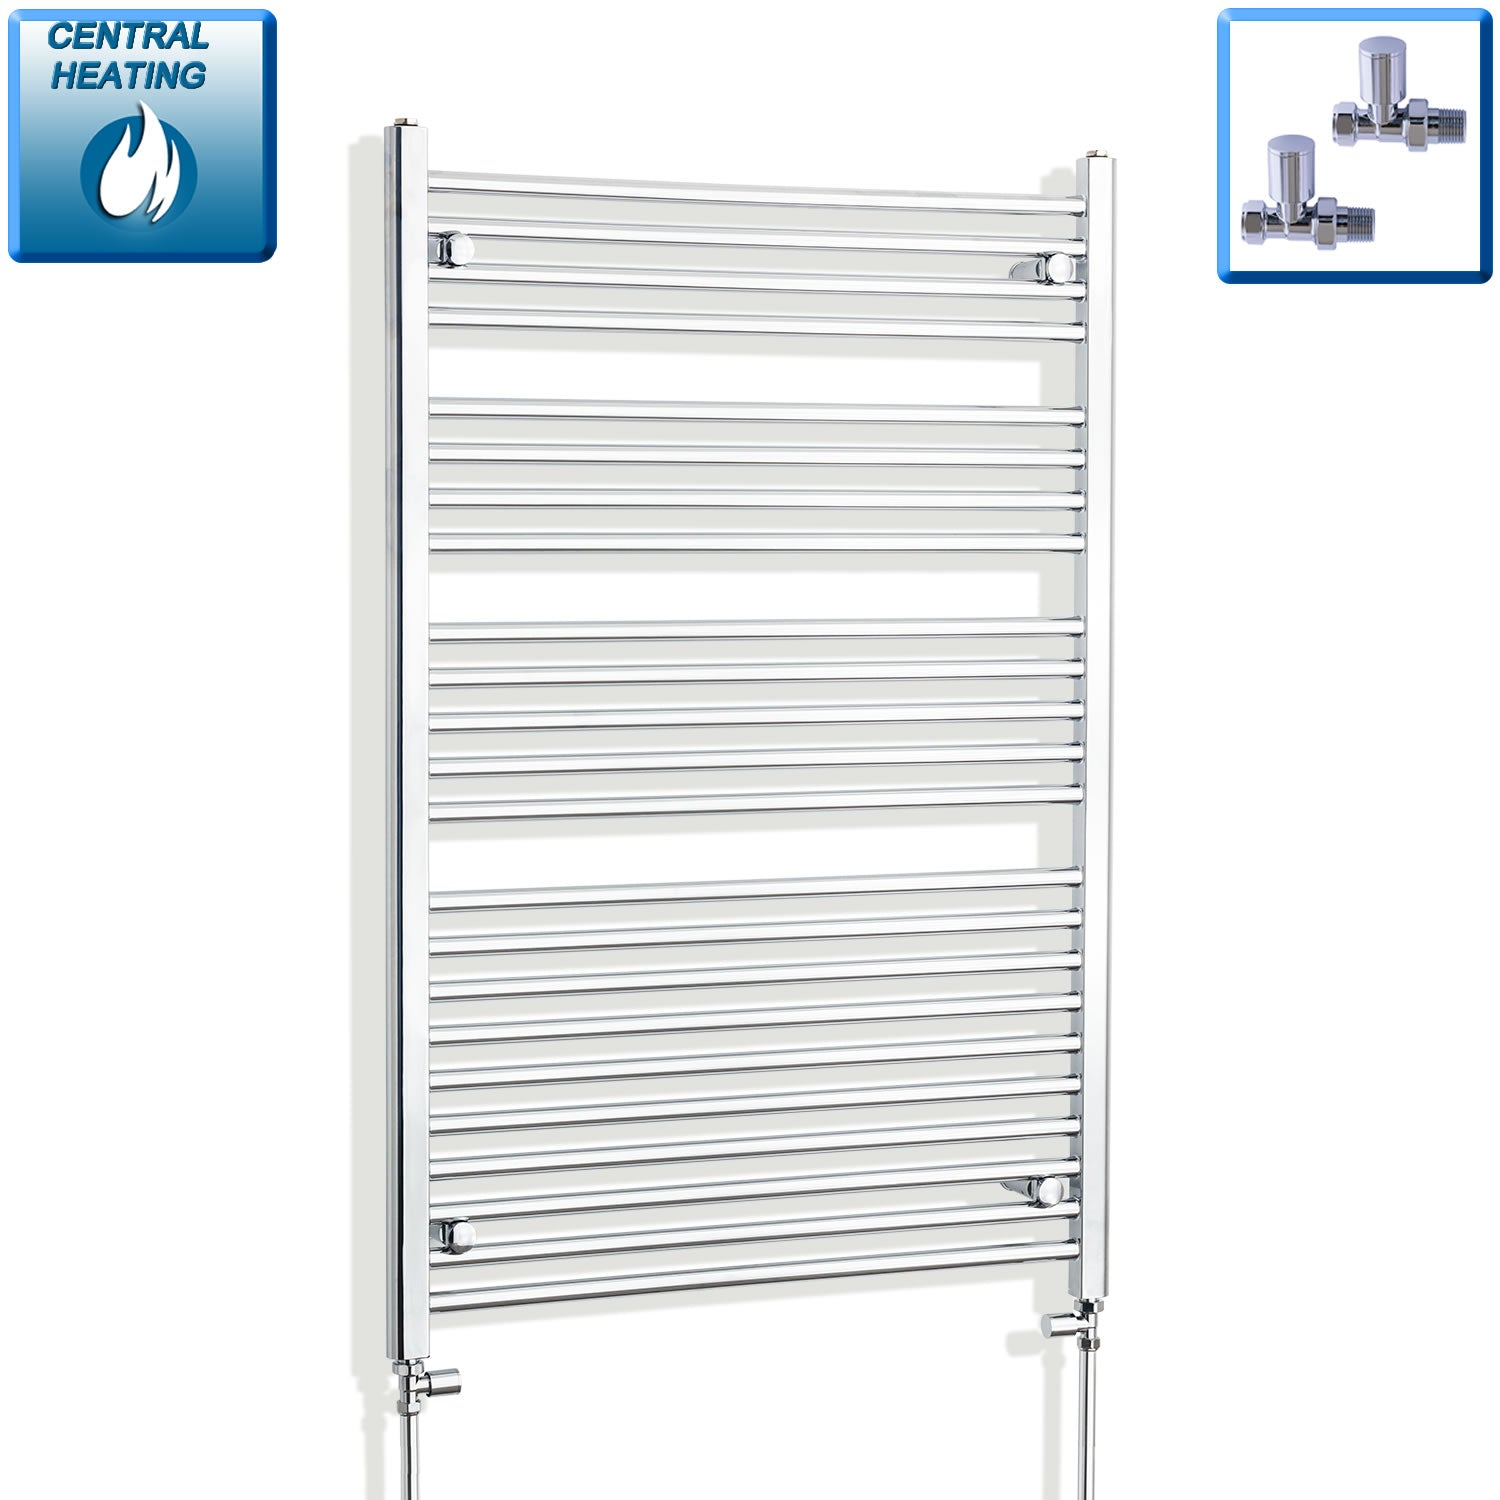 850mm Wide 1200mm High Chrome Towel Rail Radiator With Straight Valve